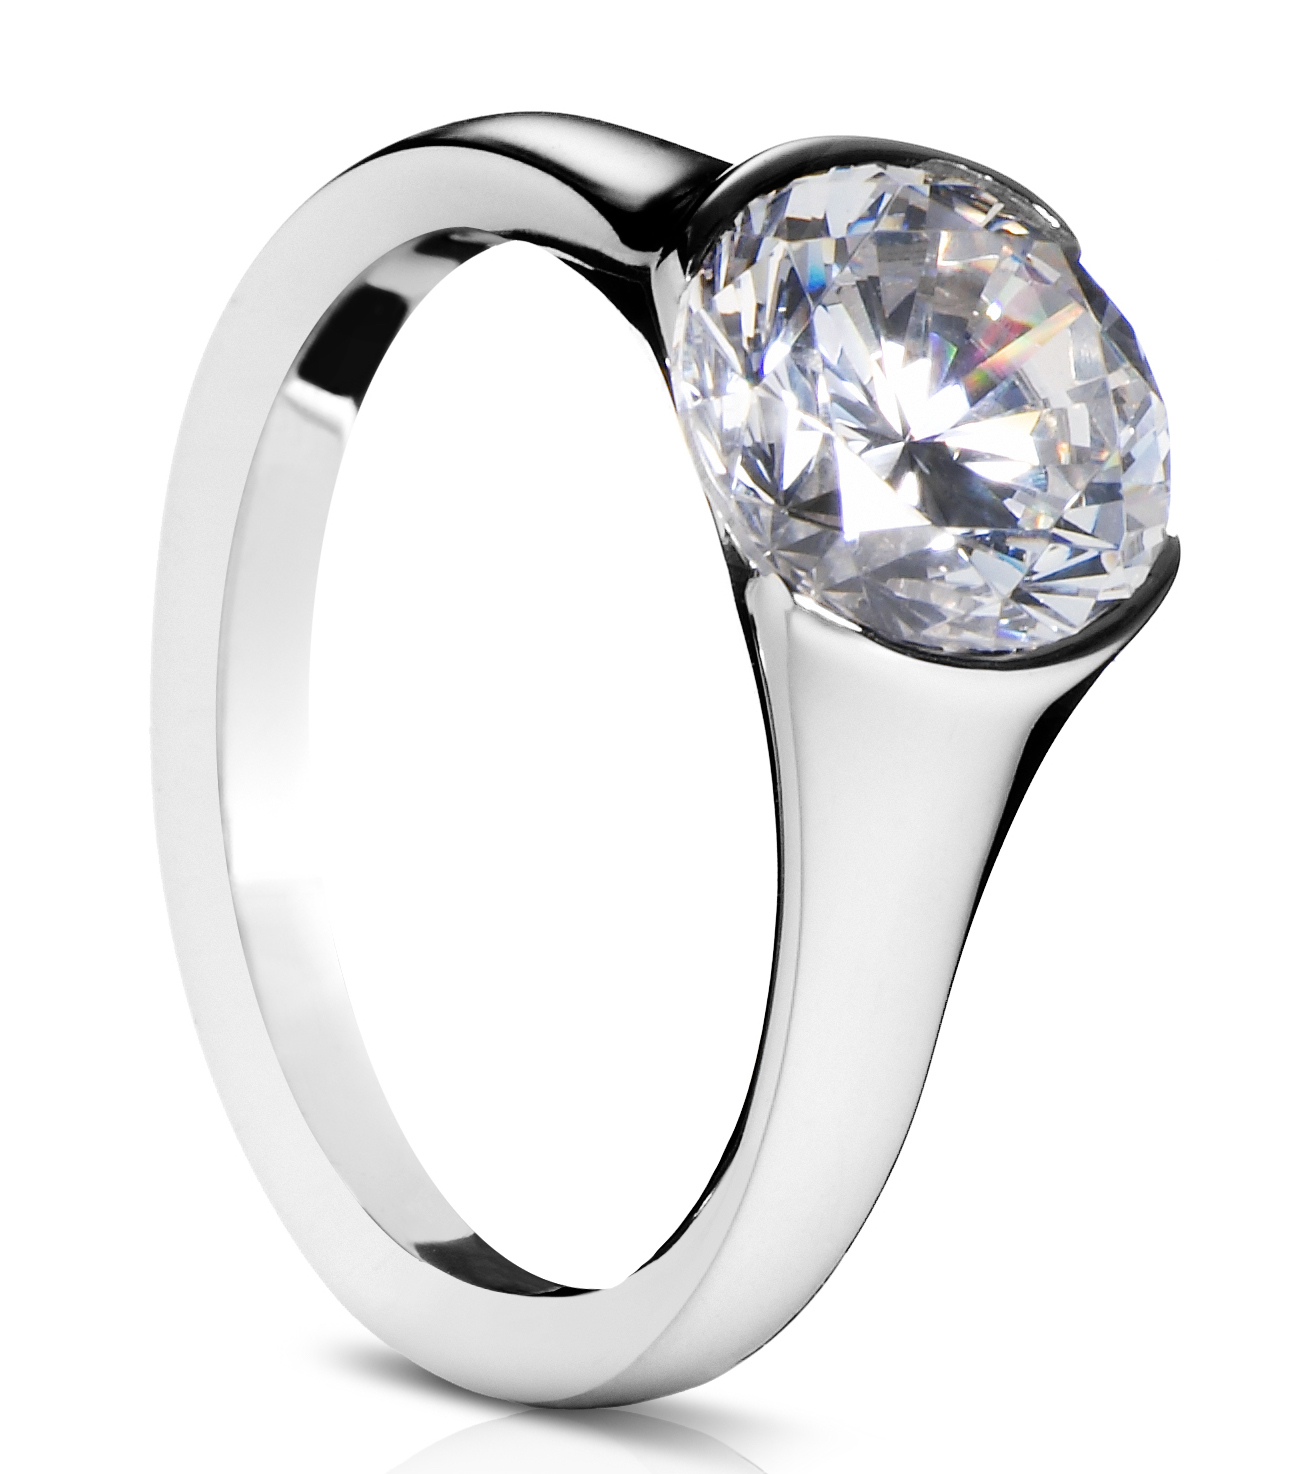 Sholdt half bezel diamond engagement ring | JCK On Your Market